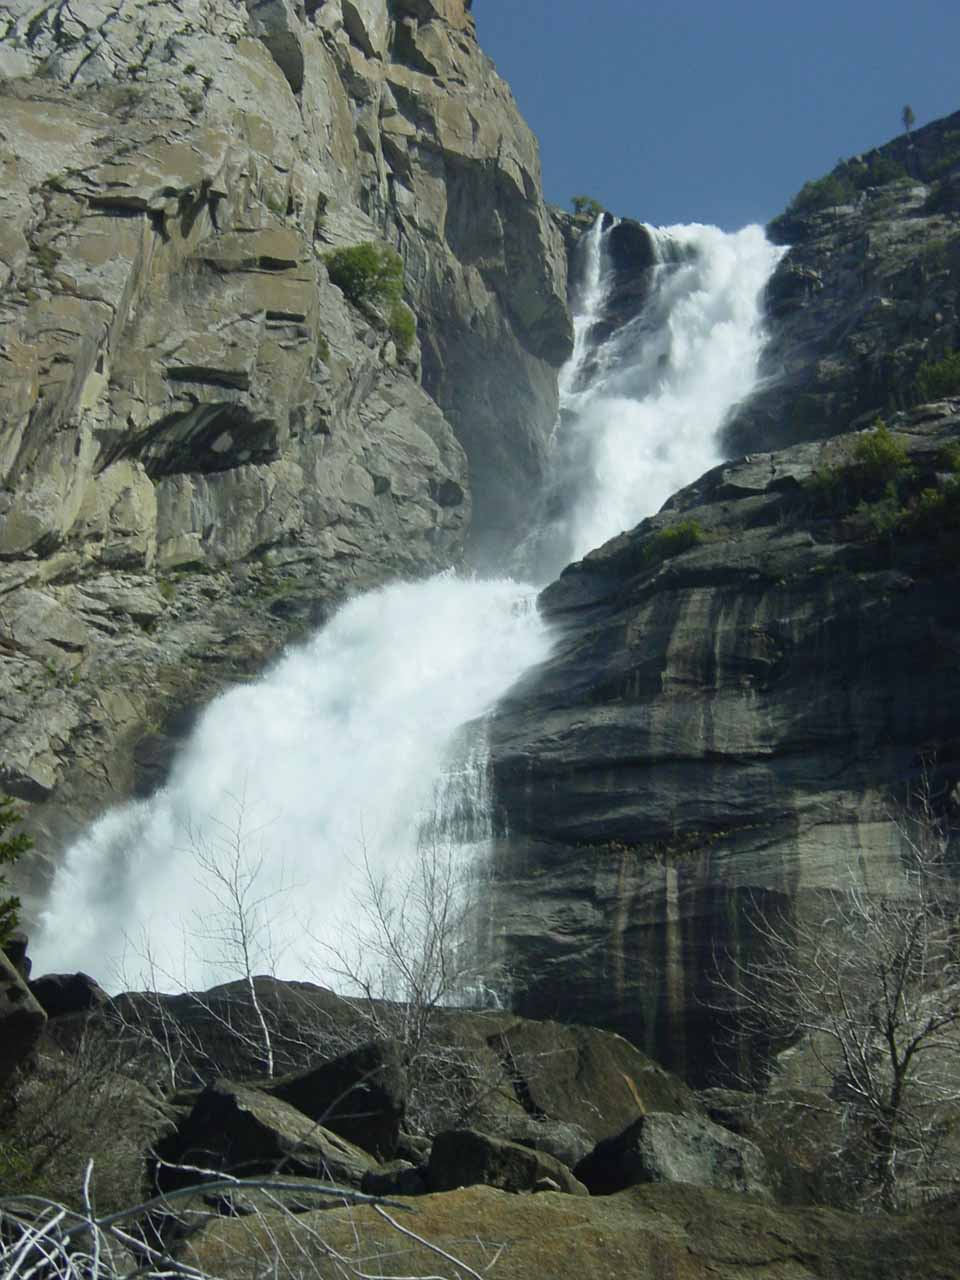 Looking up towards the top of Wapama Falls in average flow